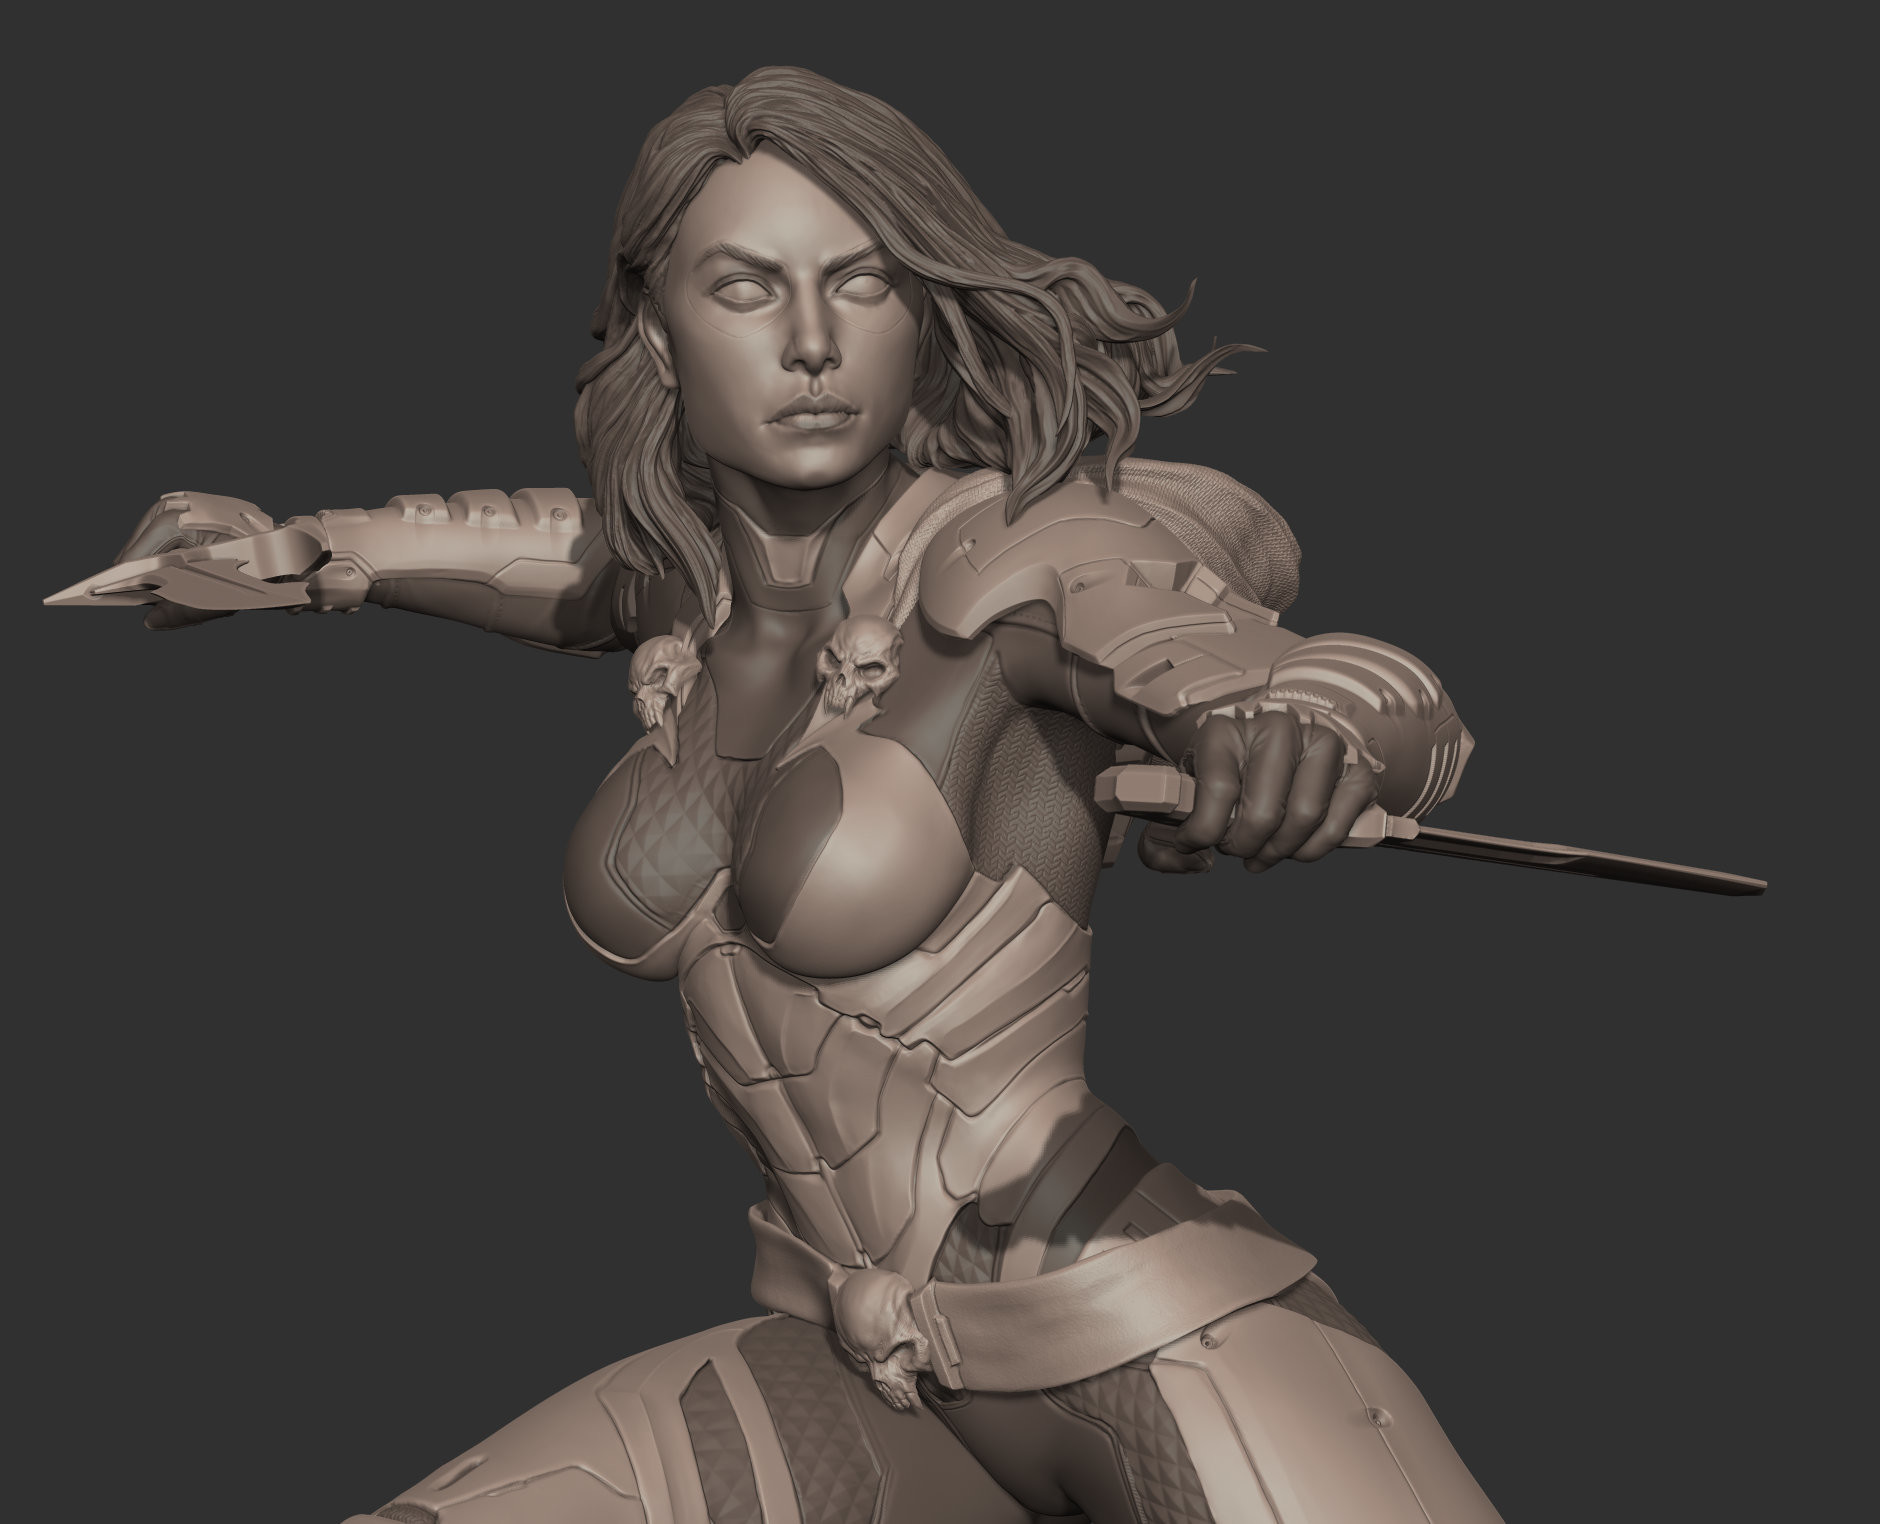 David giraud zbrush document11